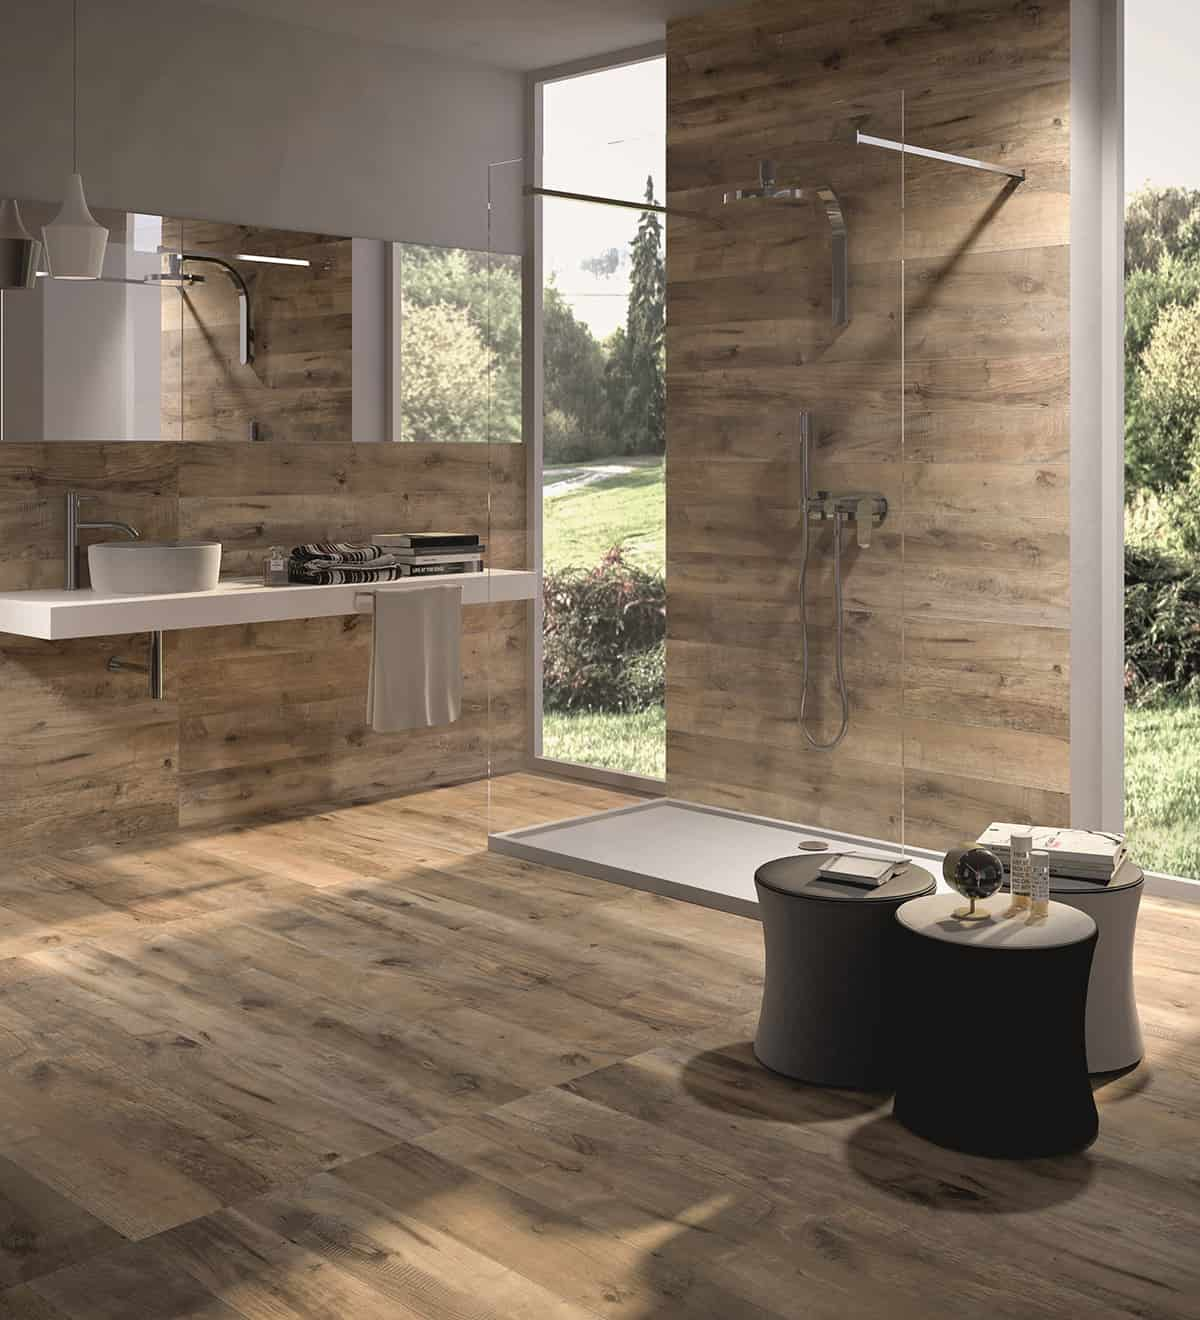 Keuken Interieur Chic Wood Look Tile: 17 Distressed, Rustic, Modern Ideas